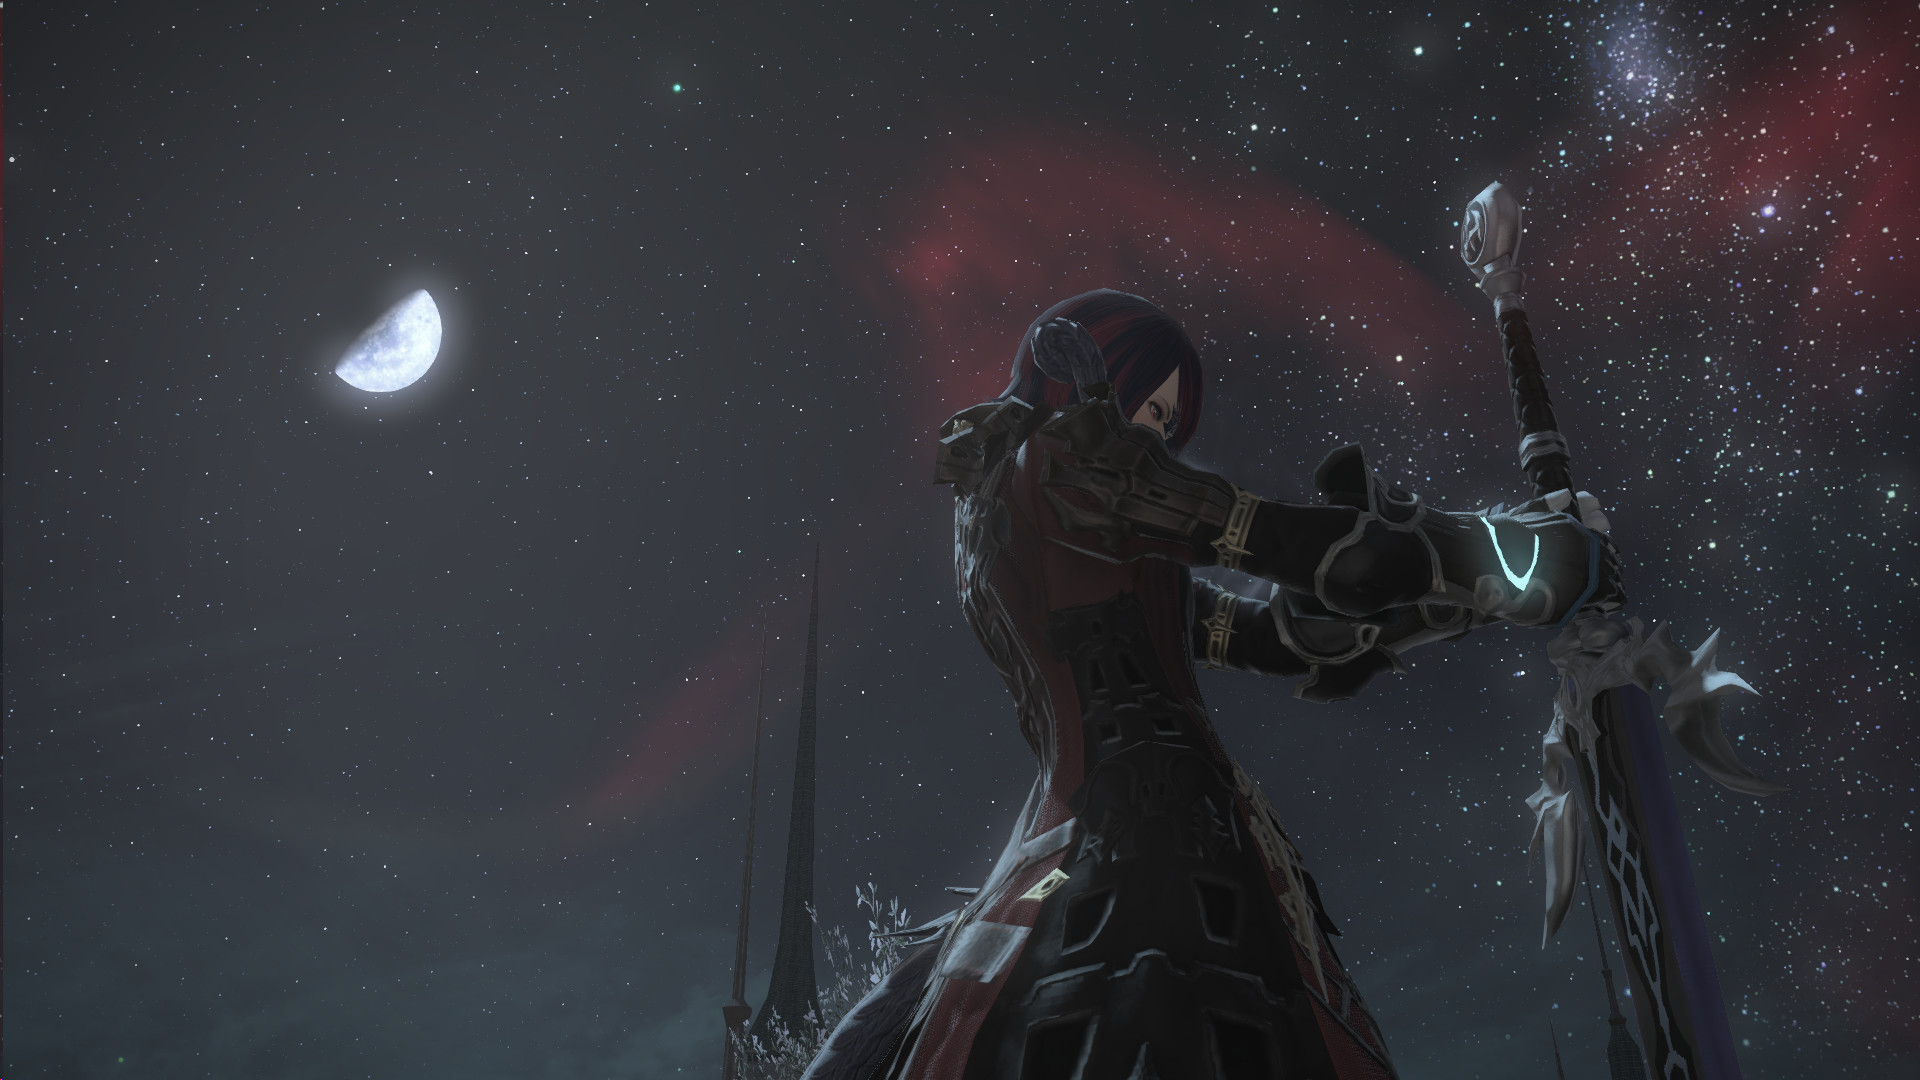 Dark Knight's Pose and Ishgard's Night sky gives really good photo  opportunities! : ffxiv